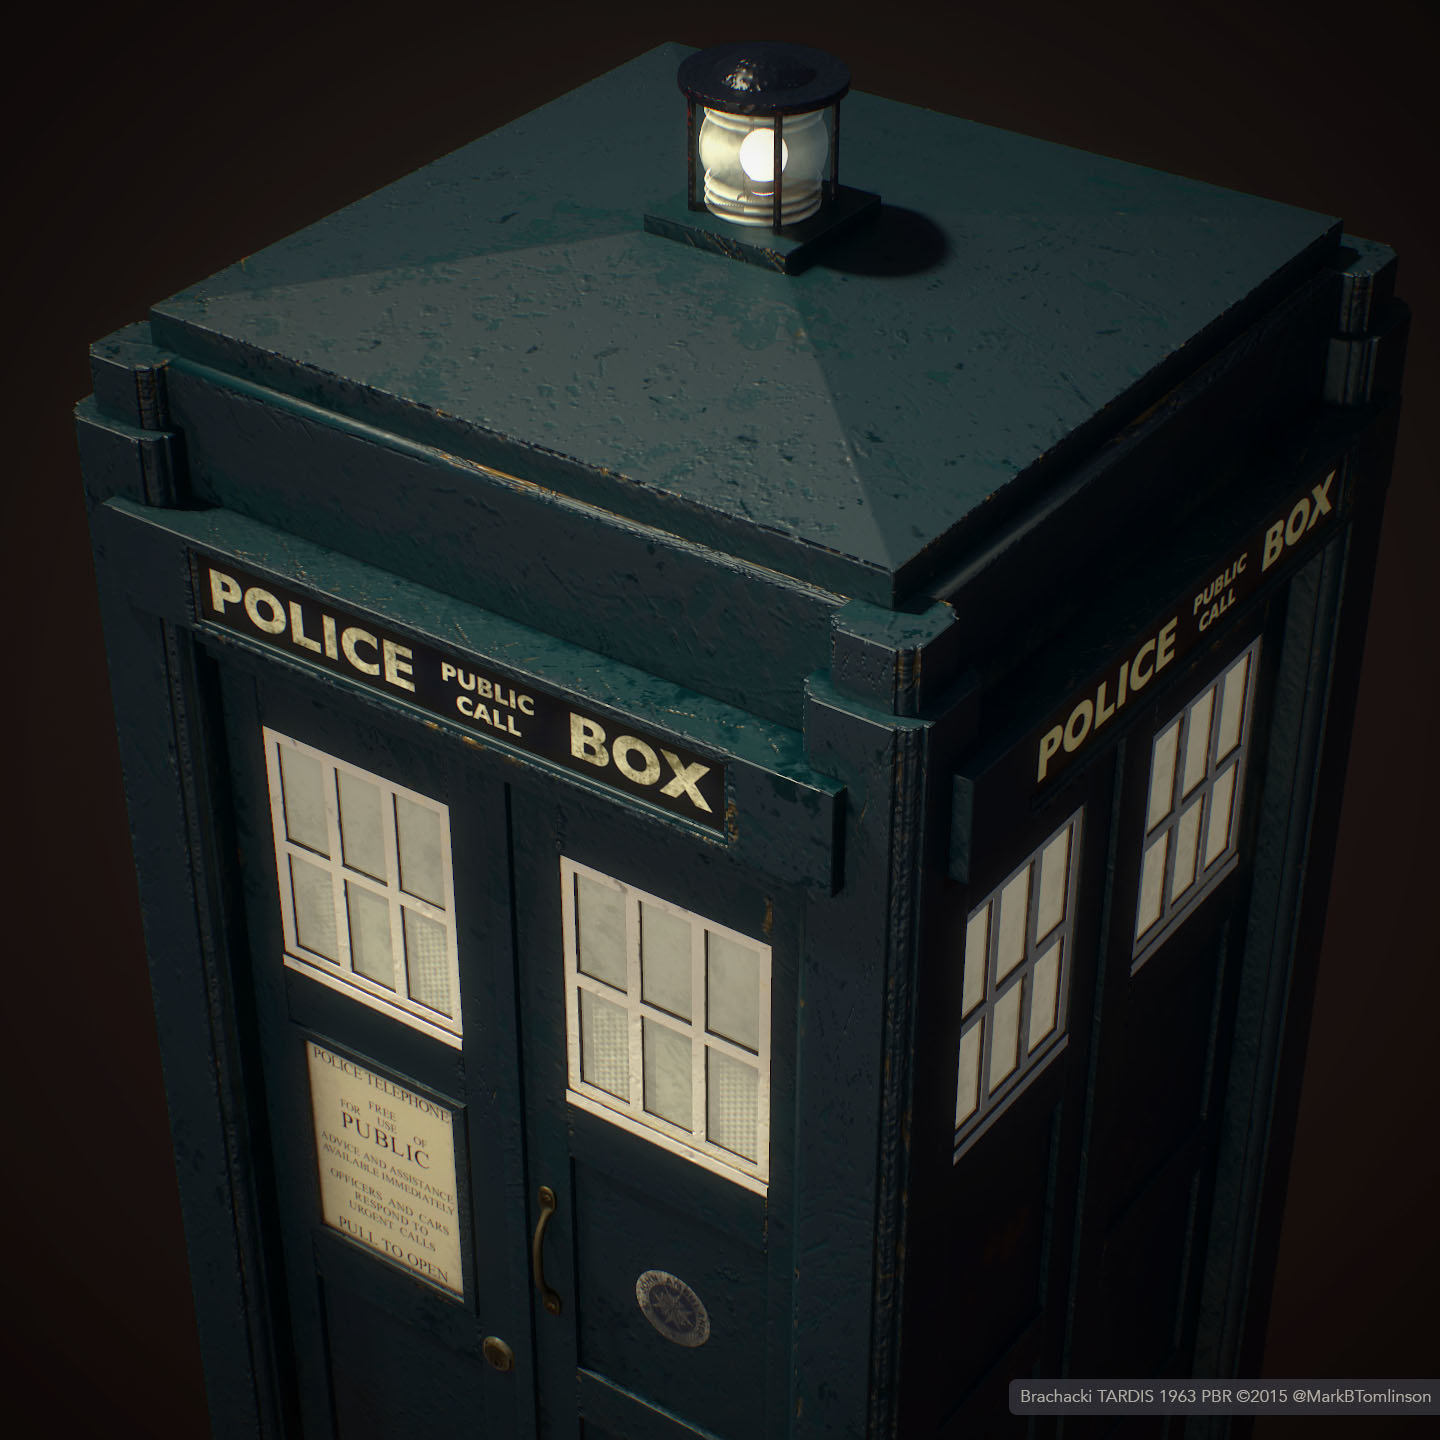 Mark b tomlinson brachacki tardis 0006 layer comp 7